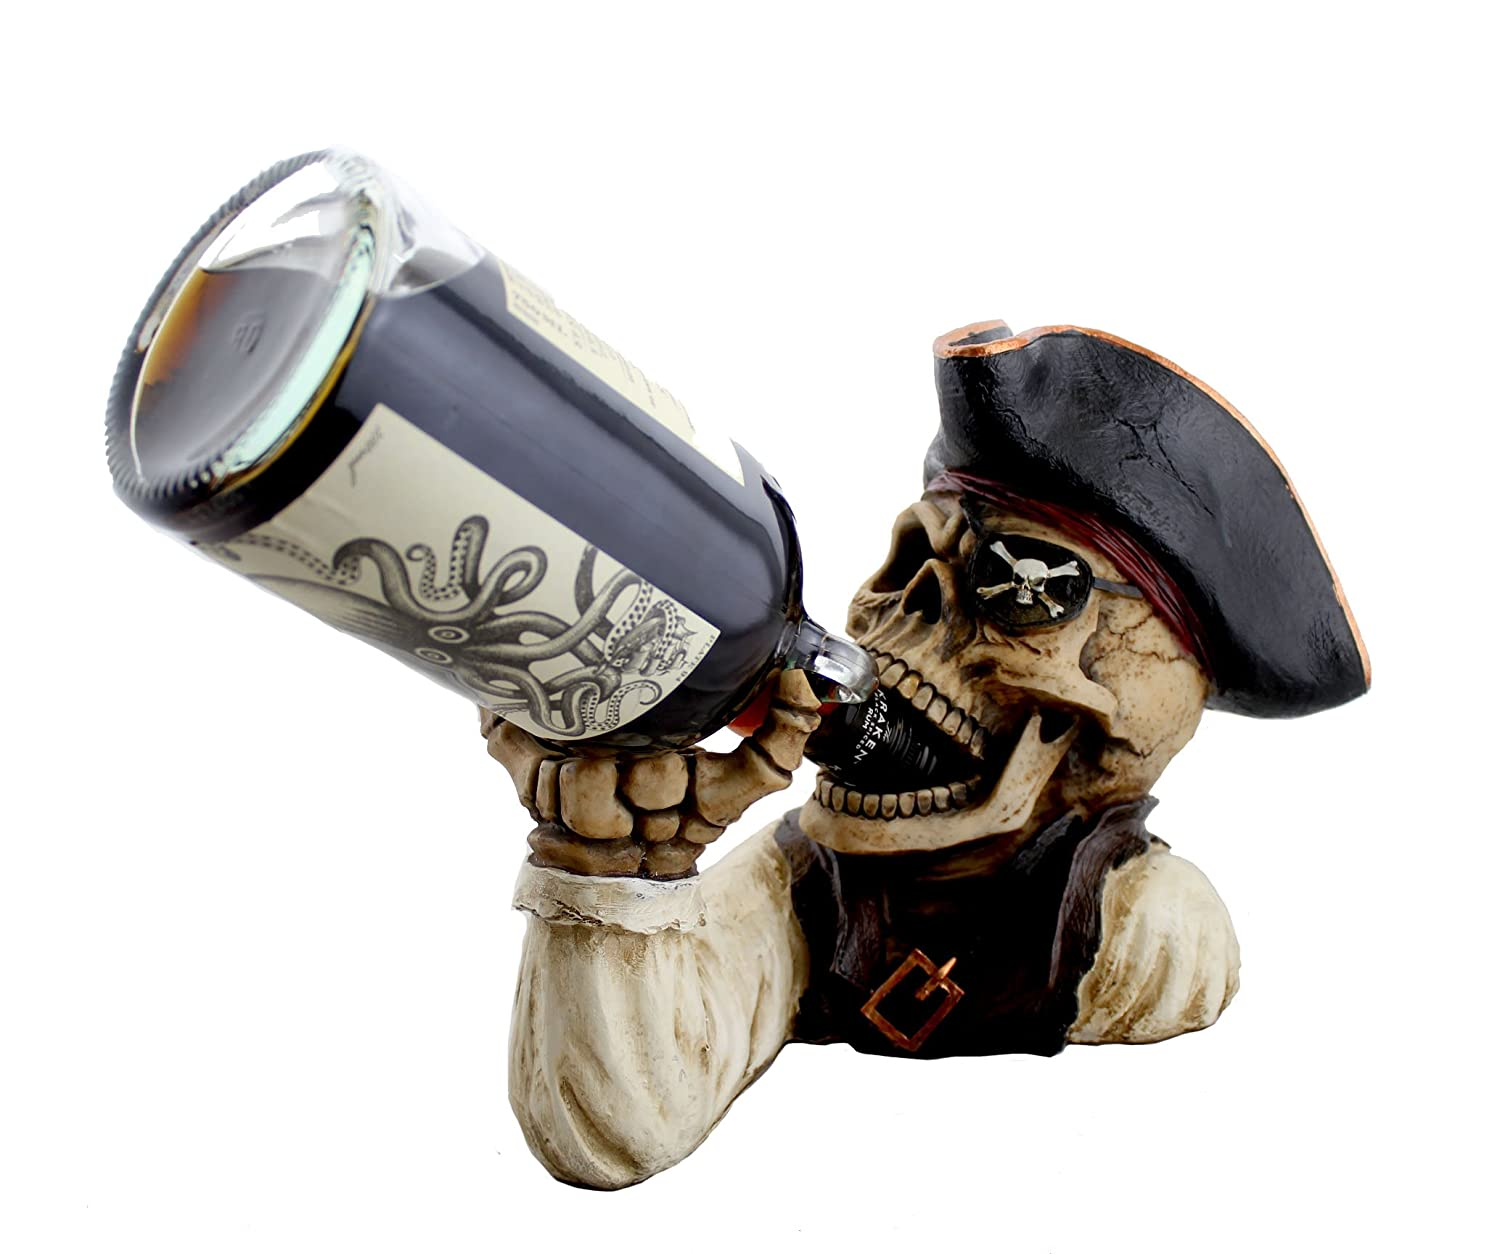 Skeleton Pirate Wine or Rum Bottle Holder By DWK | Whimsical Decorative Pirate Caribbean or Beach Themed Home or Party Gifts and Decor